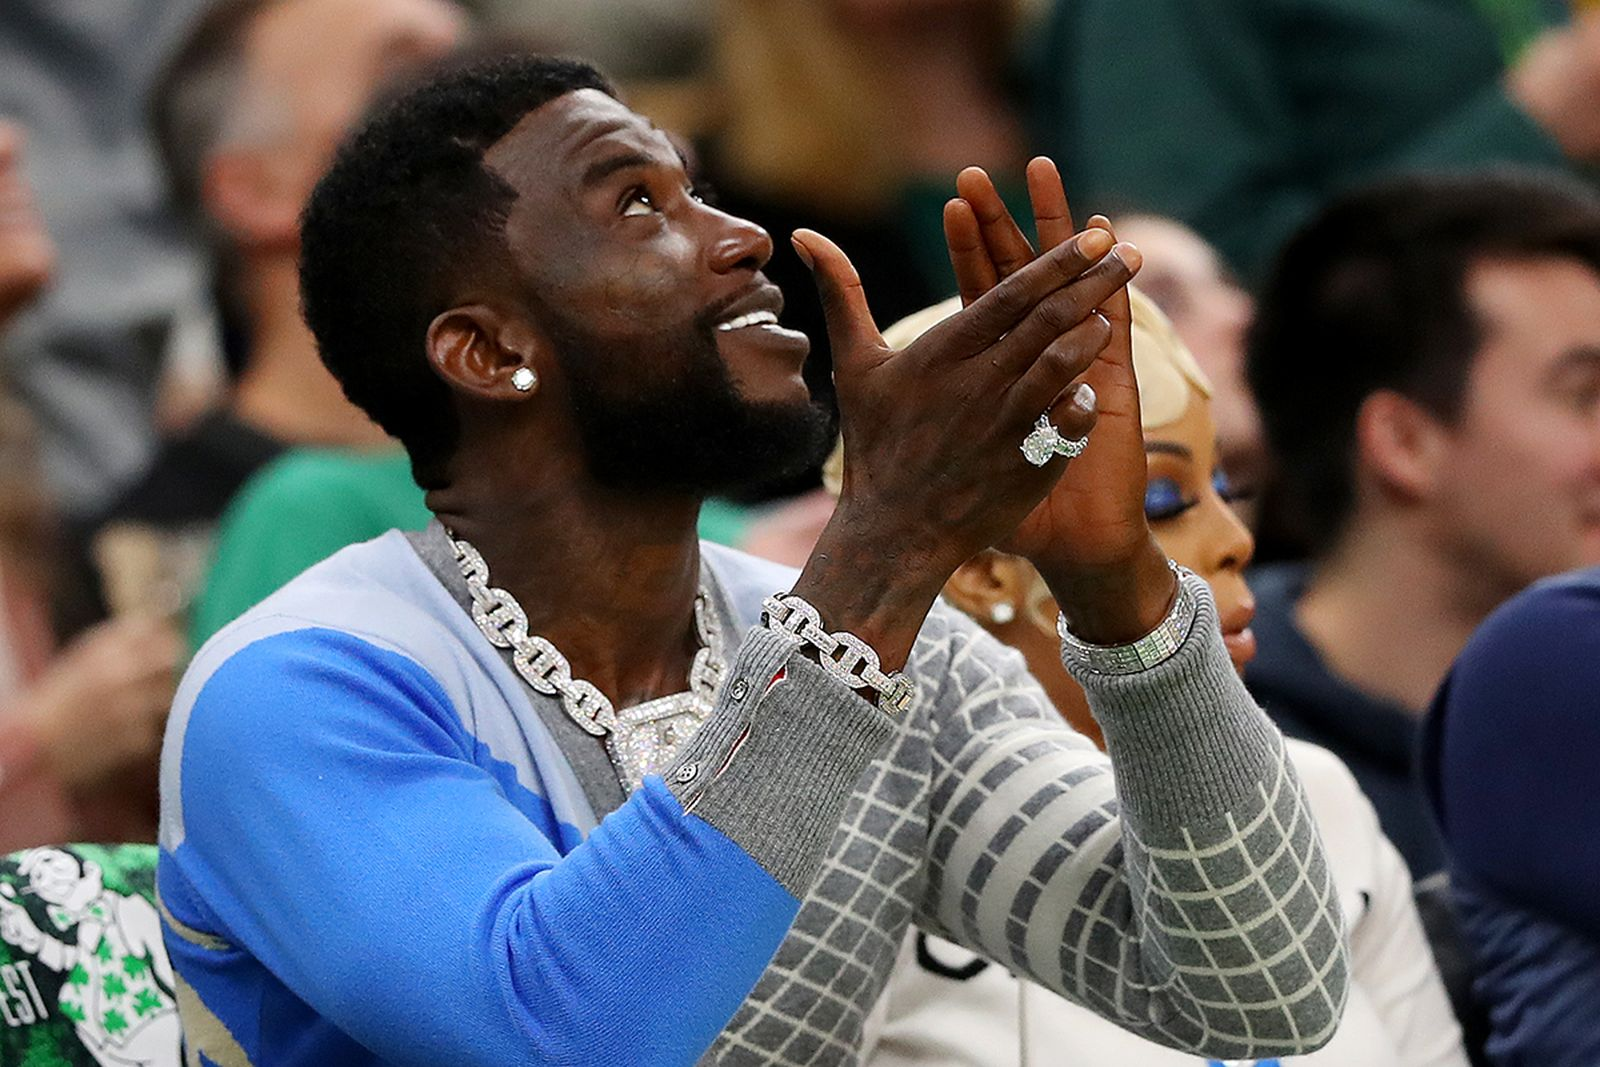 Gucci Mane clapping courtside